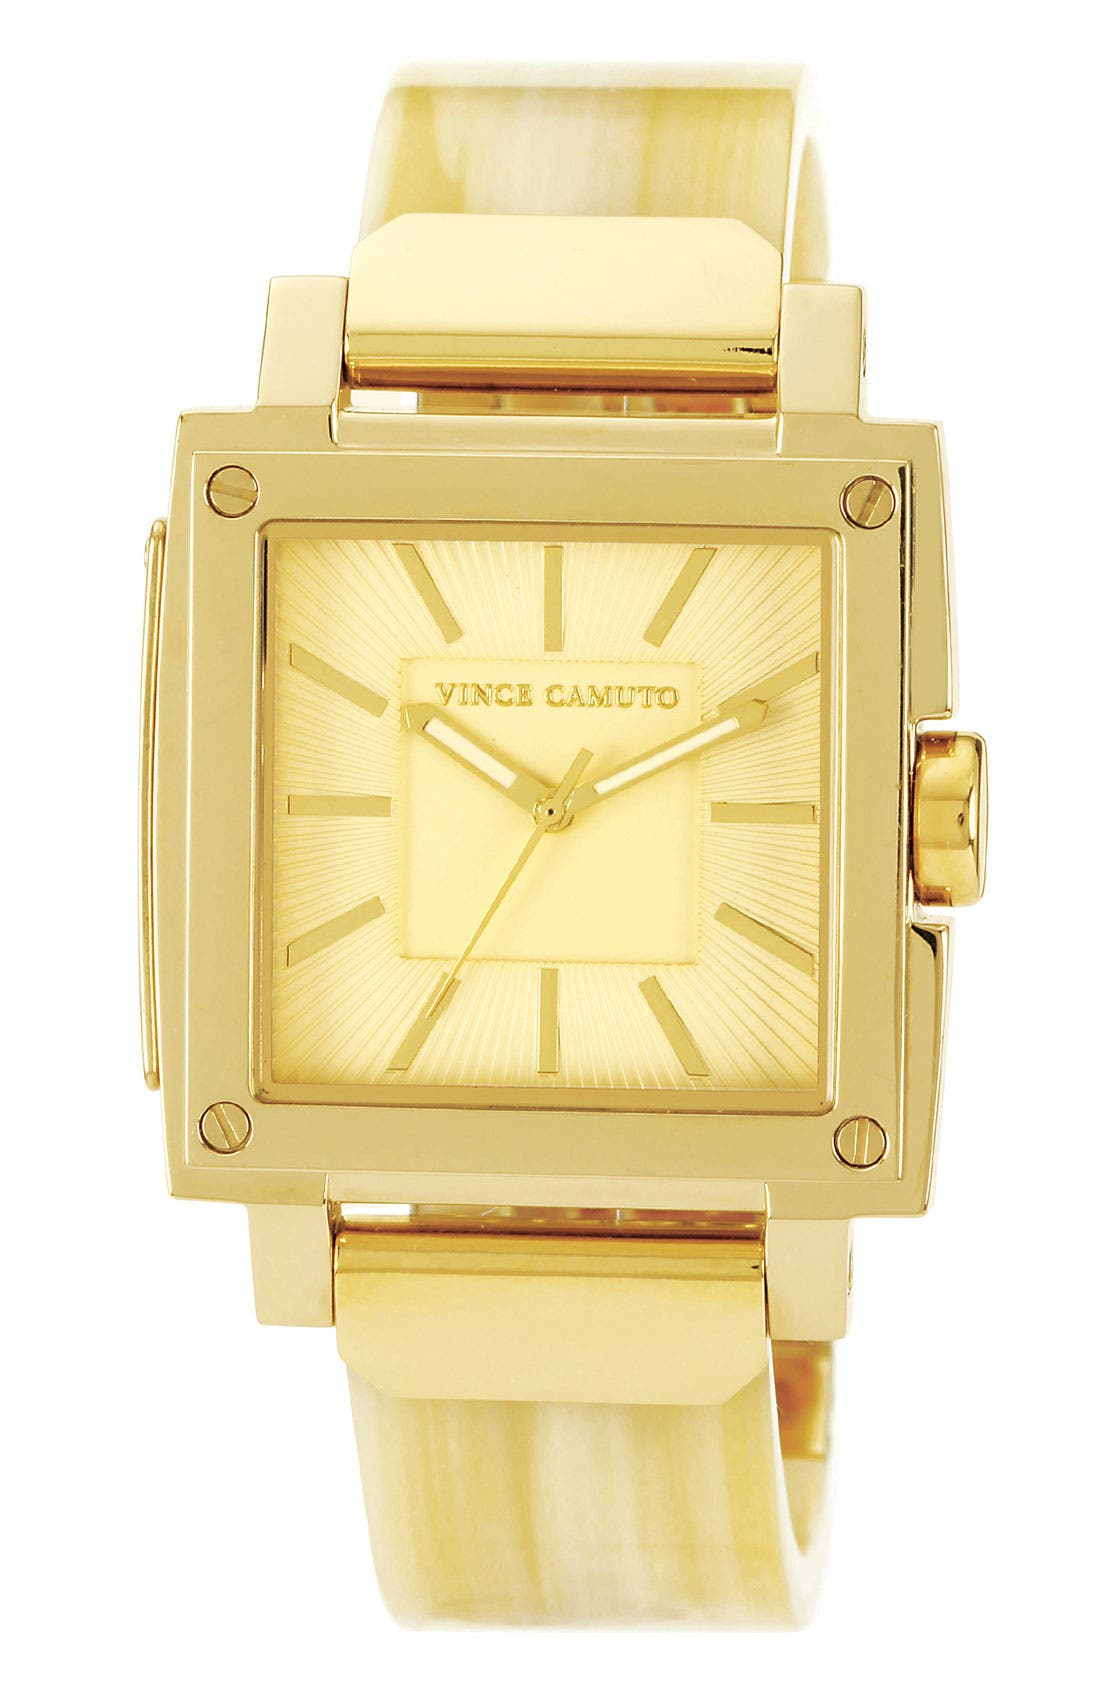 Main Image - Vince Camuto Square Case Bangle Watch, 33mm